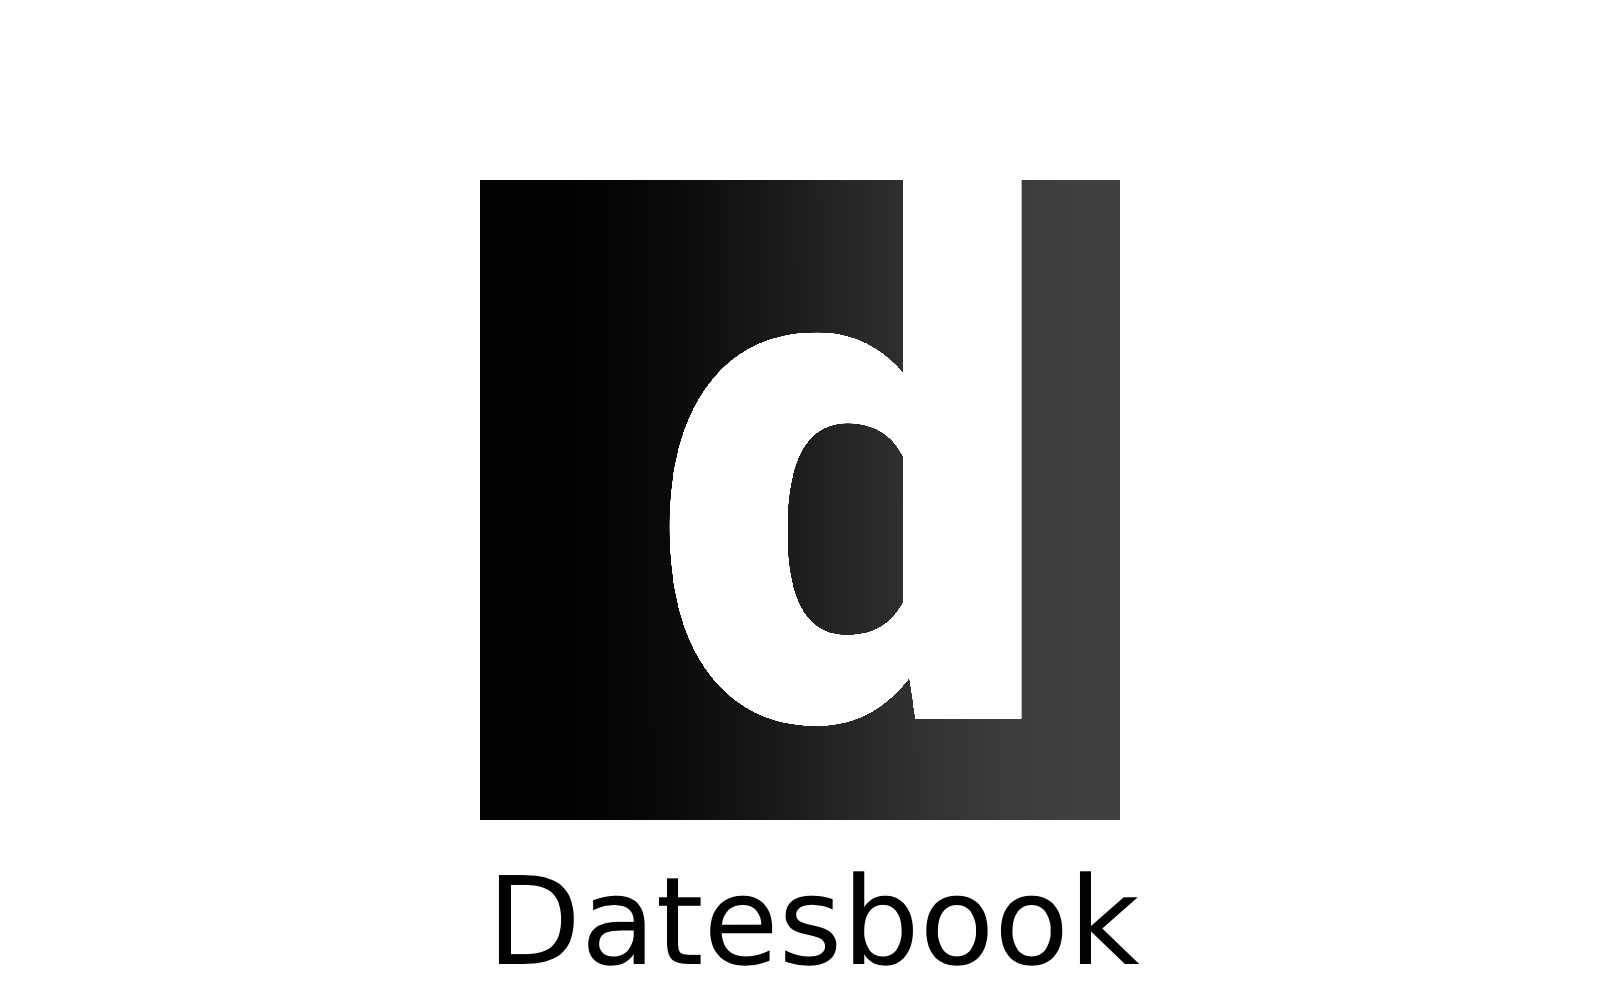 Datesbook